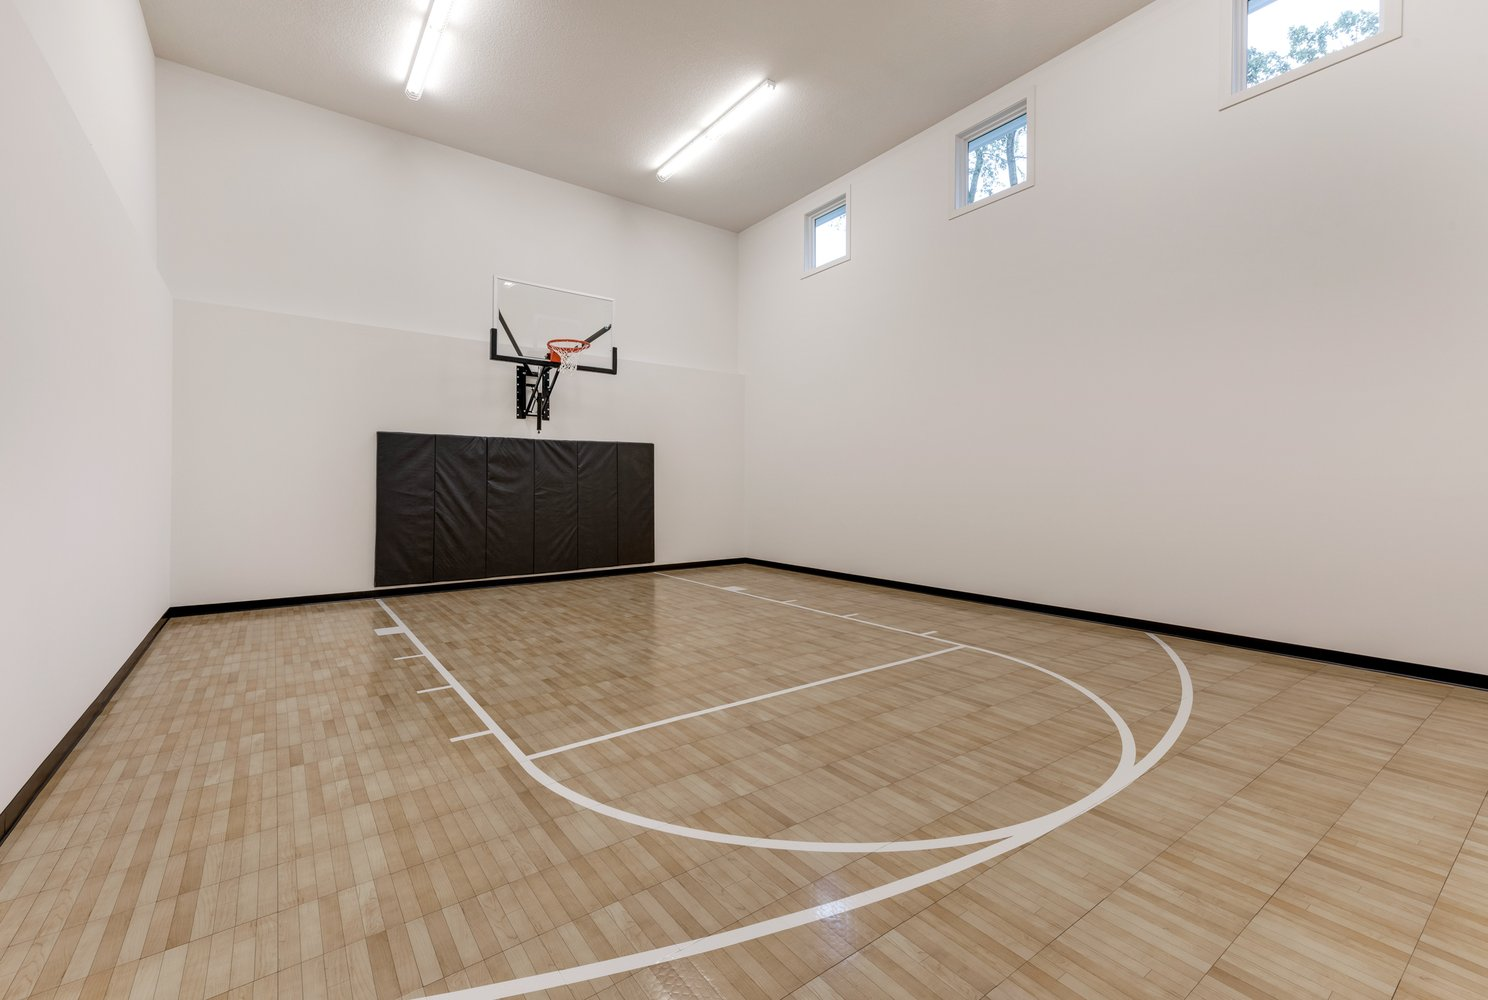 Sport Court in Home on Lake Minnetonka